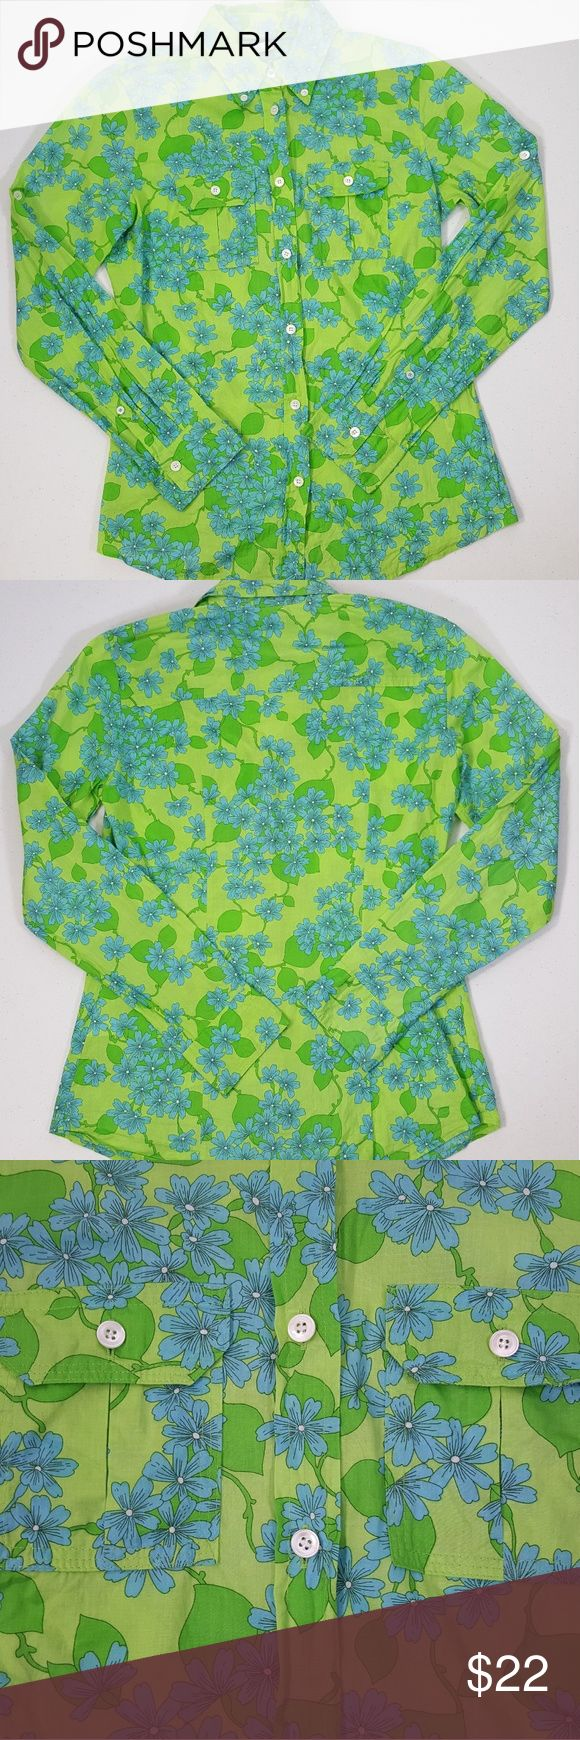 J.Crew Lime Green Floral Slim Fit Woman's Shirt Women's Size XS J.Crew Lime Floral Button Up Shirt. The shirt is in excellent preowned condition. No stains or tears. Colors are very vibrant. Has 2 pockets on front of shirt on chest (see picture). 100% Cotton. Machine Washable. Thank you! God bless. J. Crew Tops